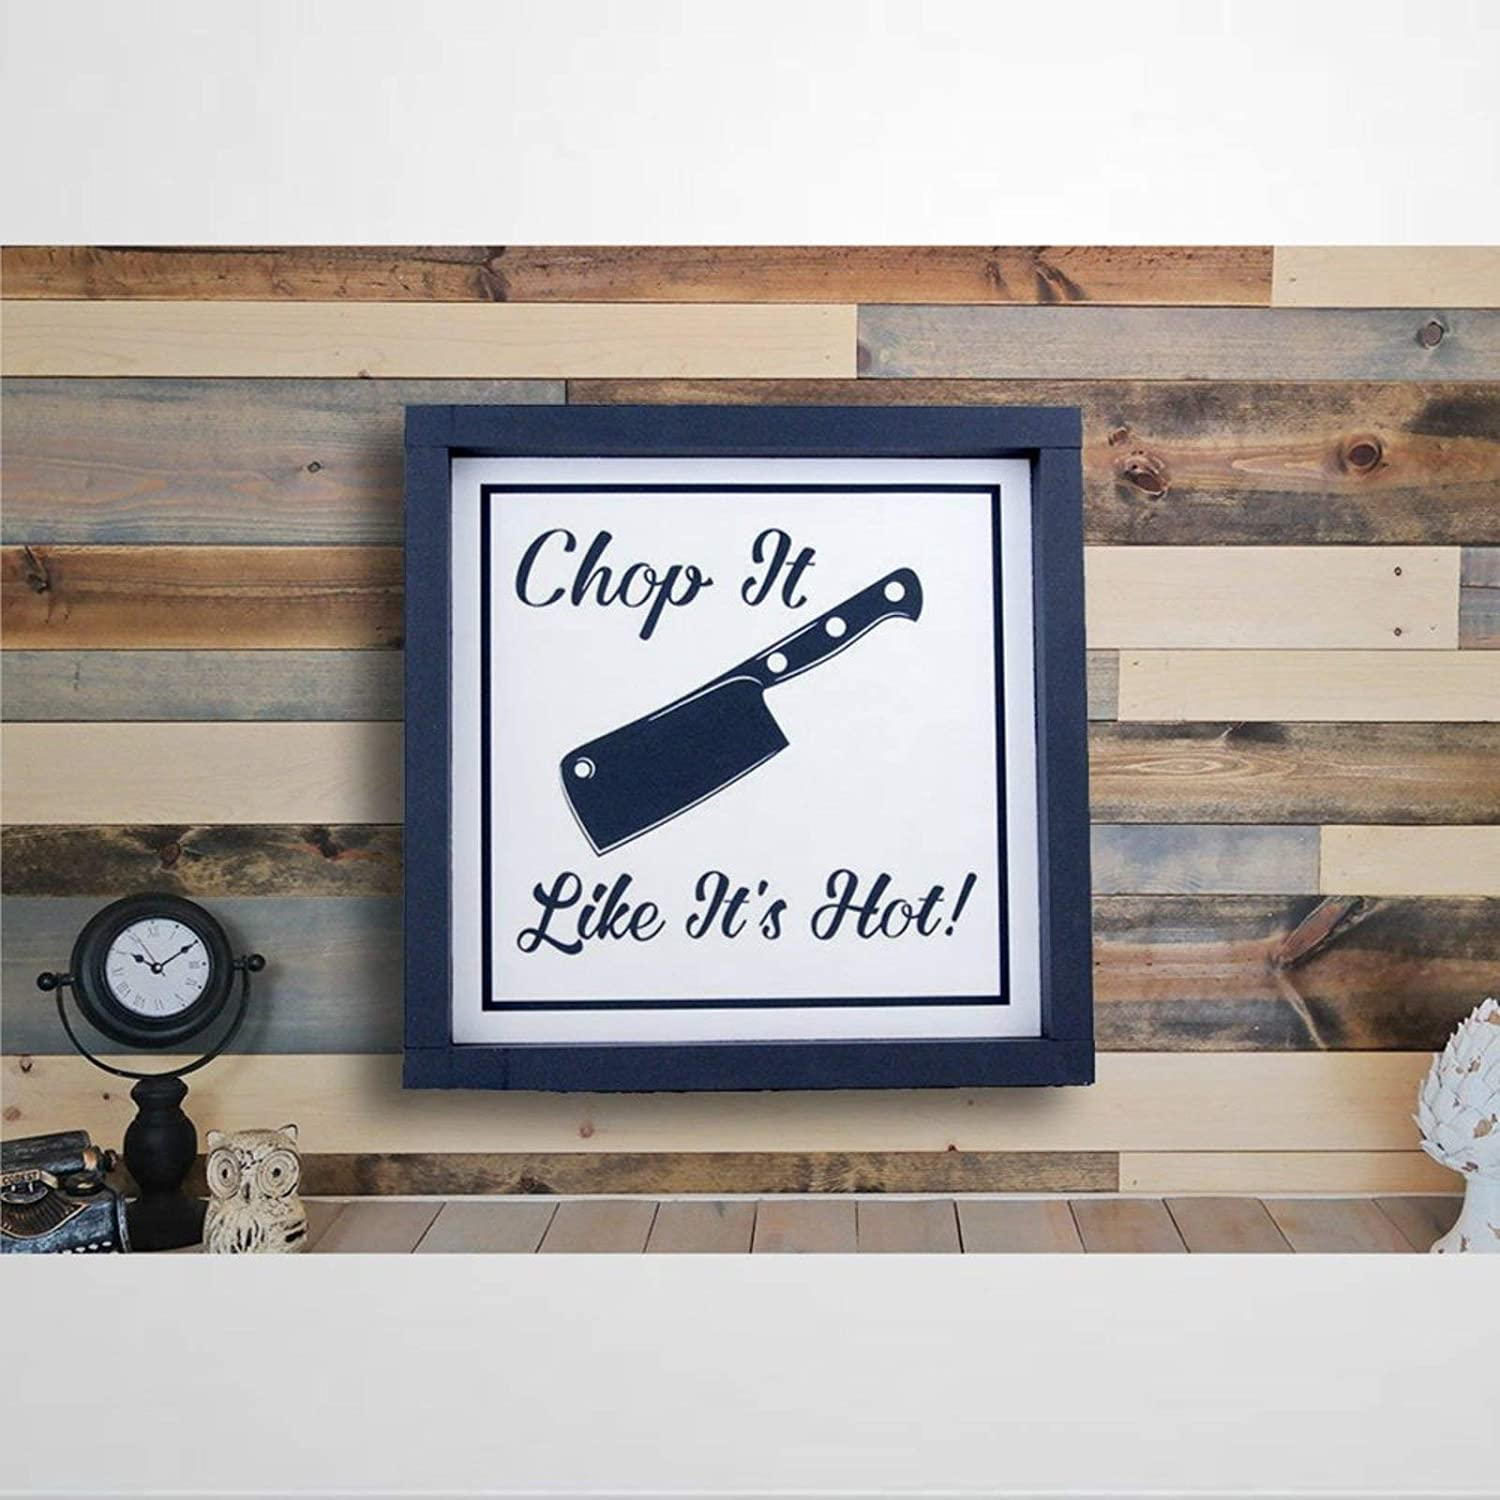 DONL9BAUER Chop It Like It's Hot Framed Wooden Sign with Quotes & Sayings Wood Sign Kitchen Wall Hanging Home Decor for Living Room